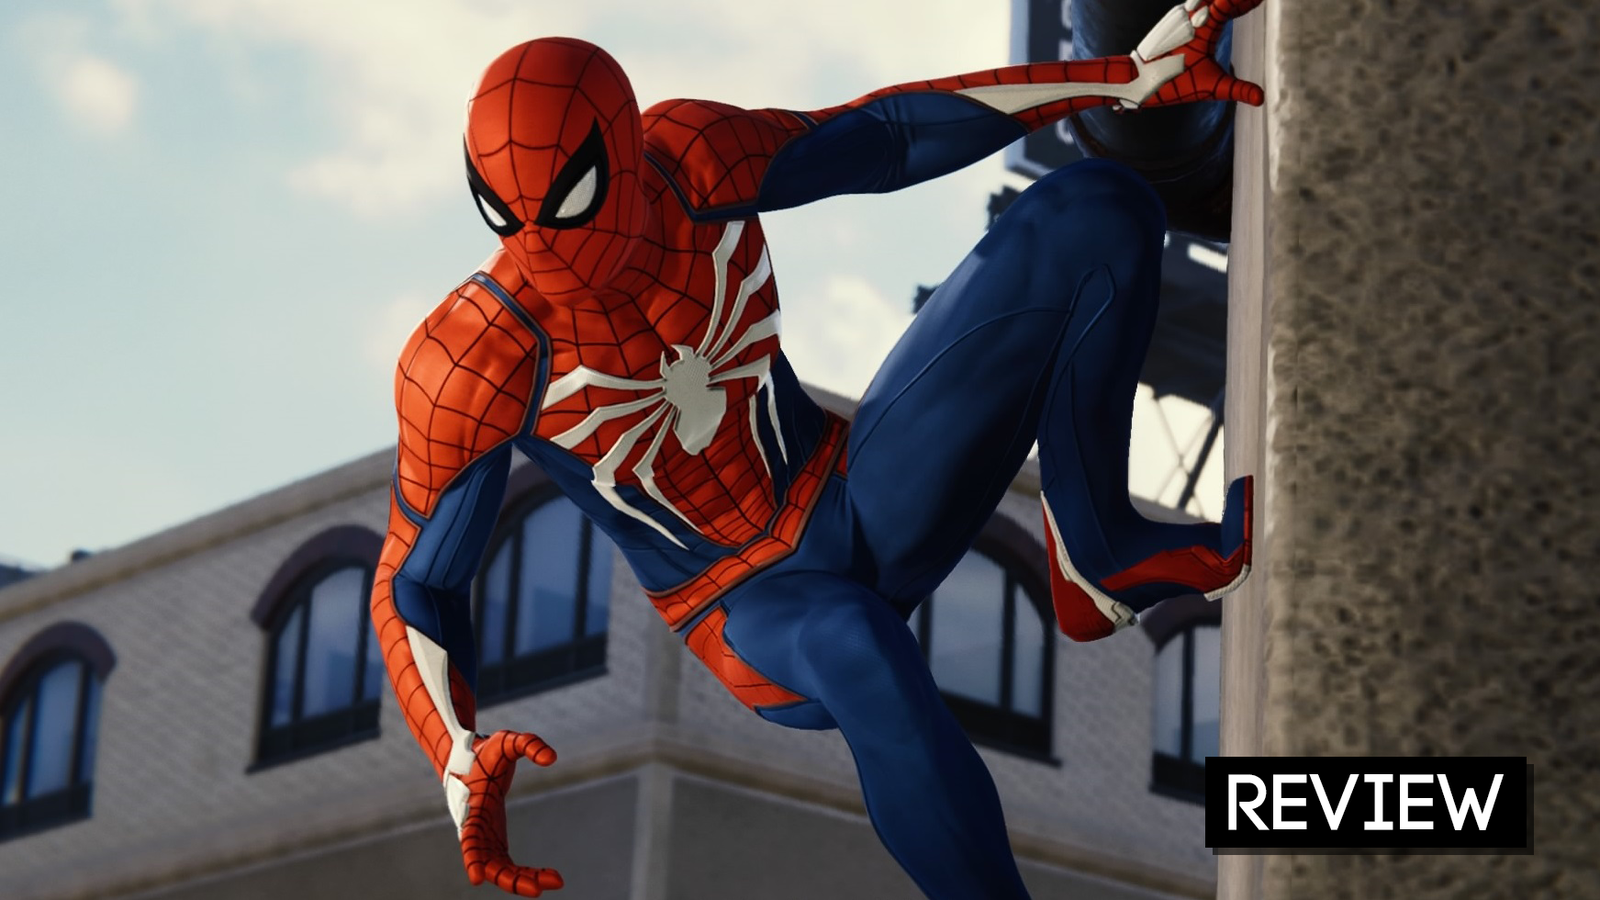 Spider-Man: The Kotaku Review